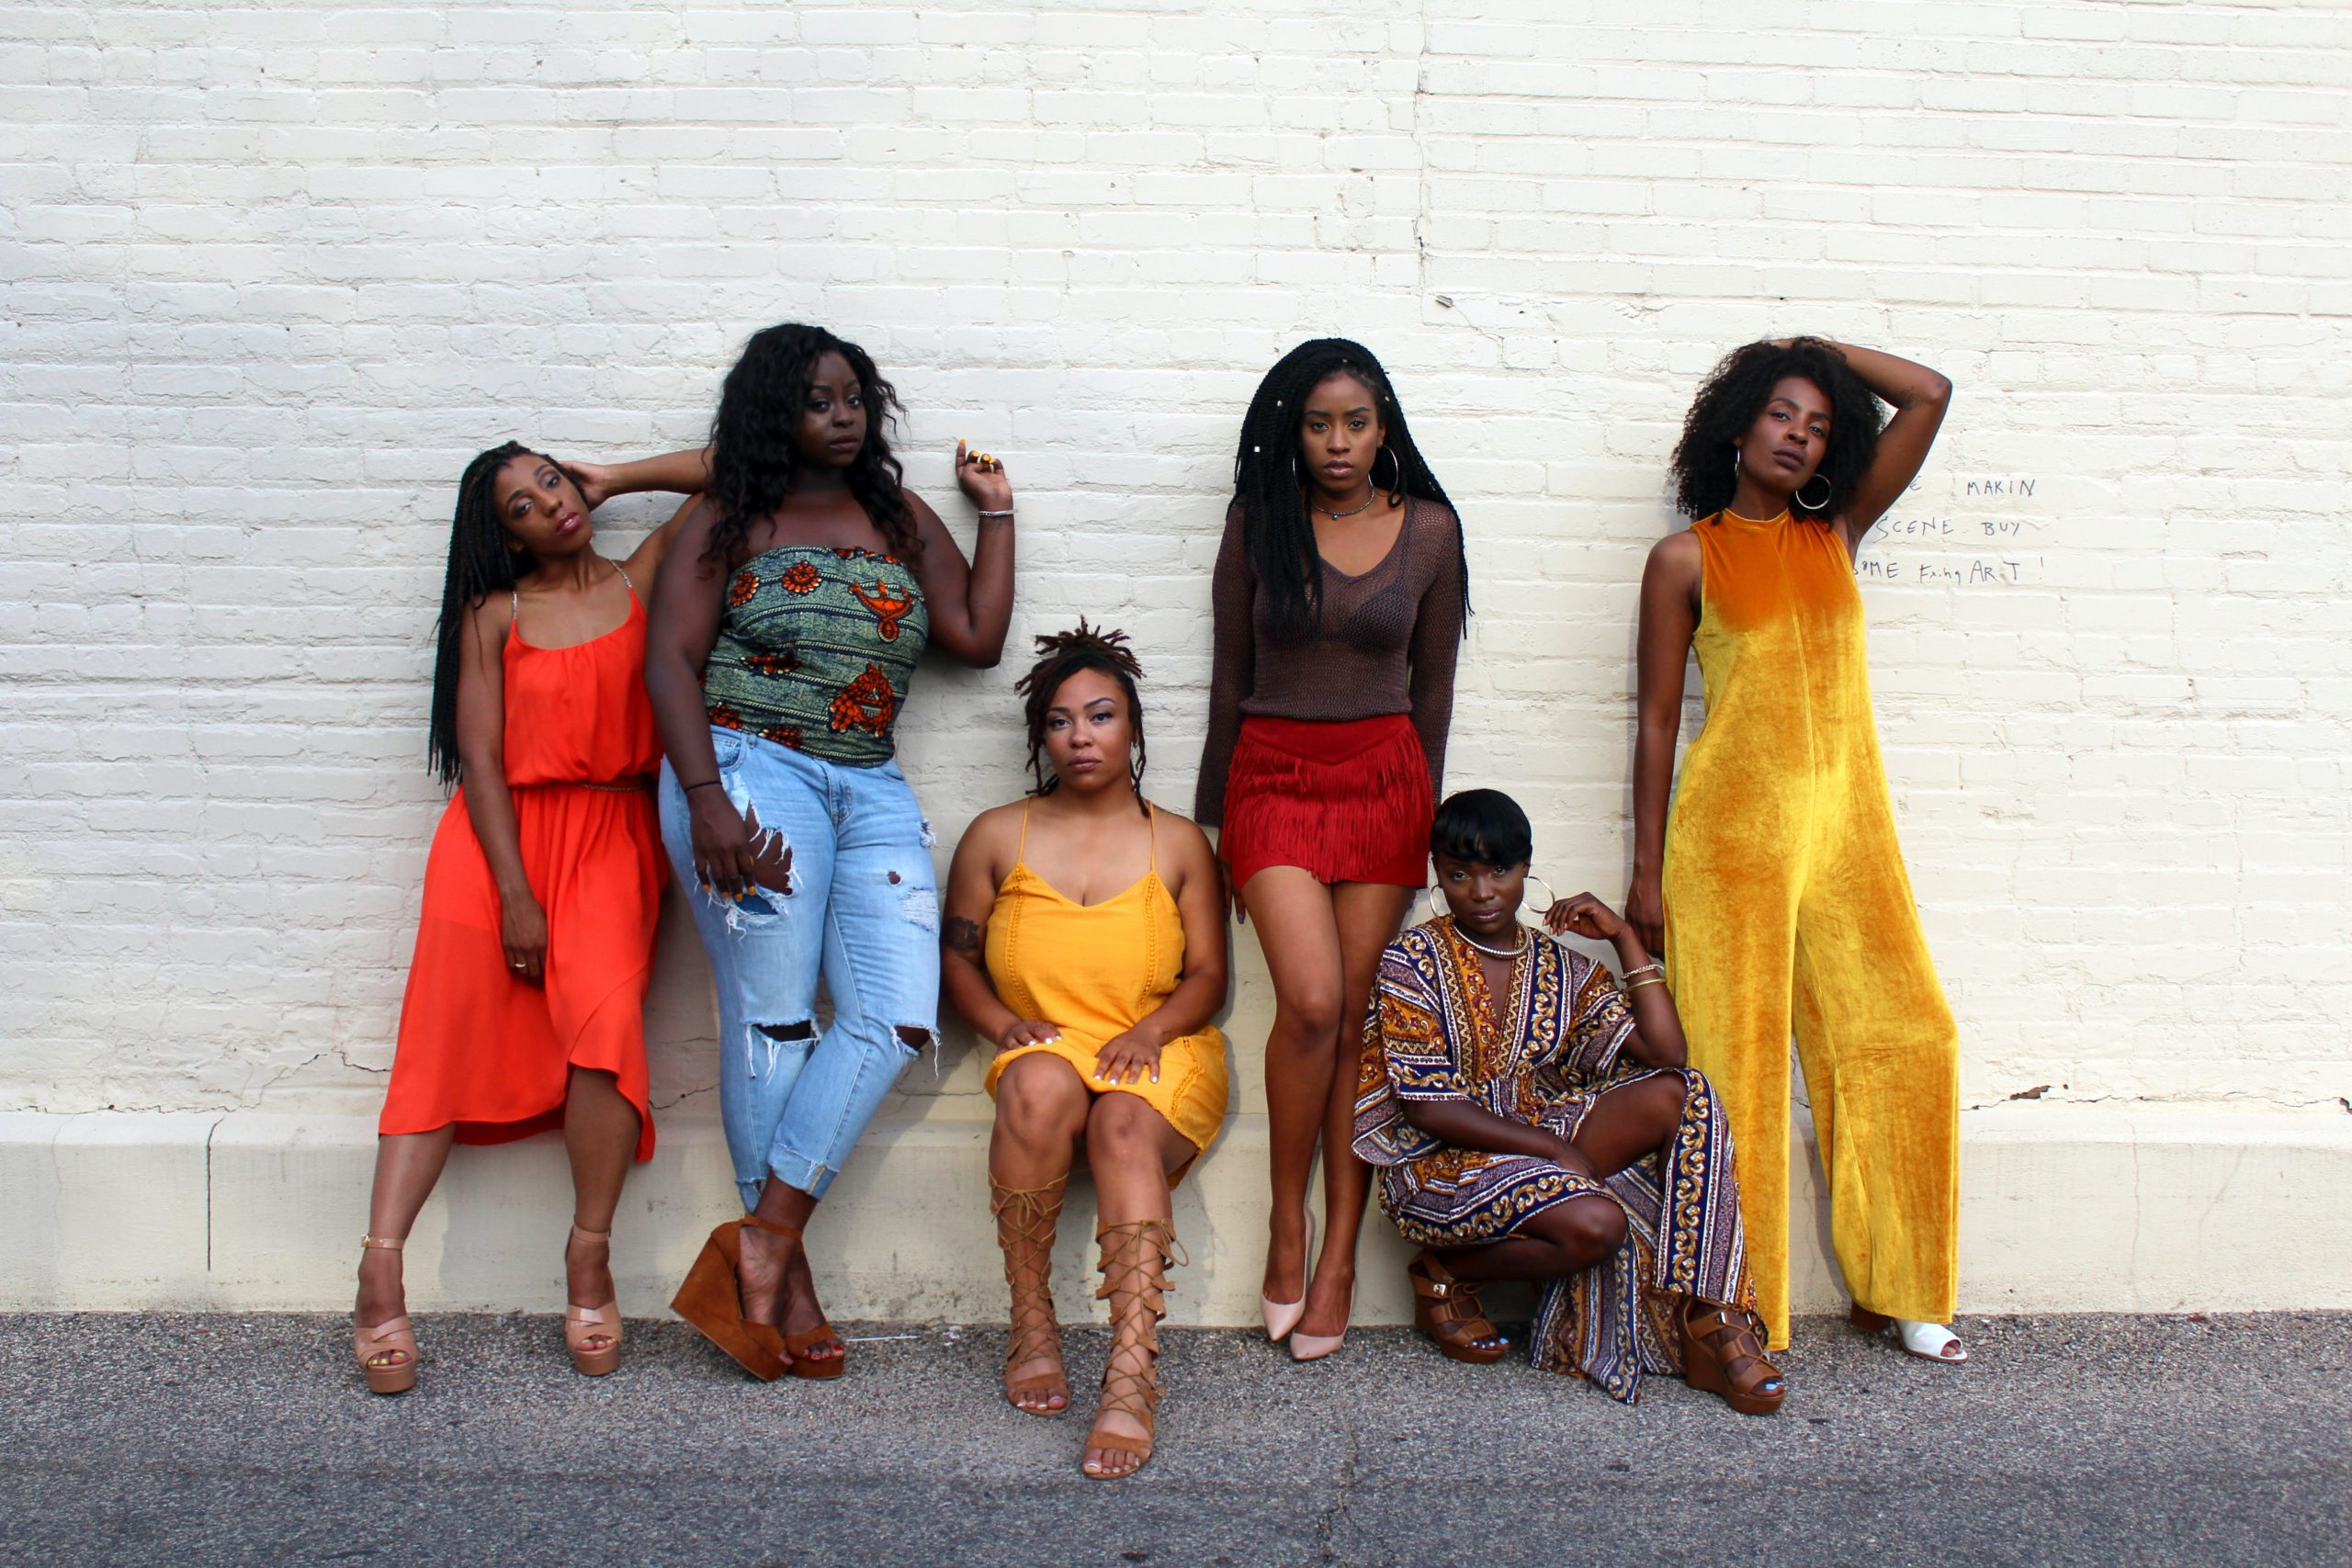 Six Black women looking good as hell, posing against a painted white brick wall. From left to right, a woman wears an orange calf length dress and has her head cocked to the left and leans her elbow against the next woman. She is tall and thick in tattered blue jeans and pale green tube top, her left hand is backed against the wall and she doesn